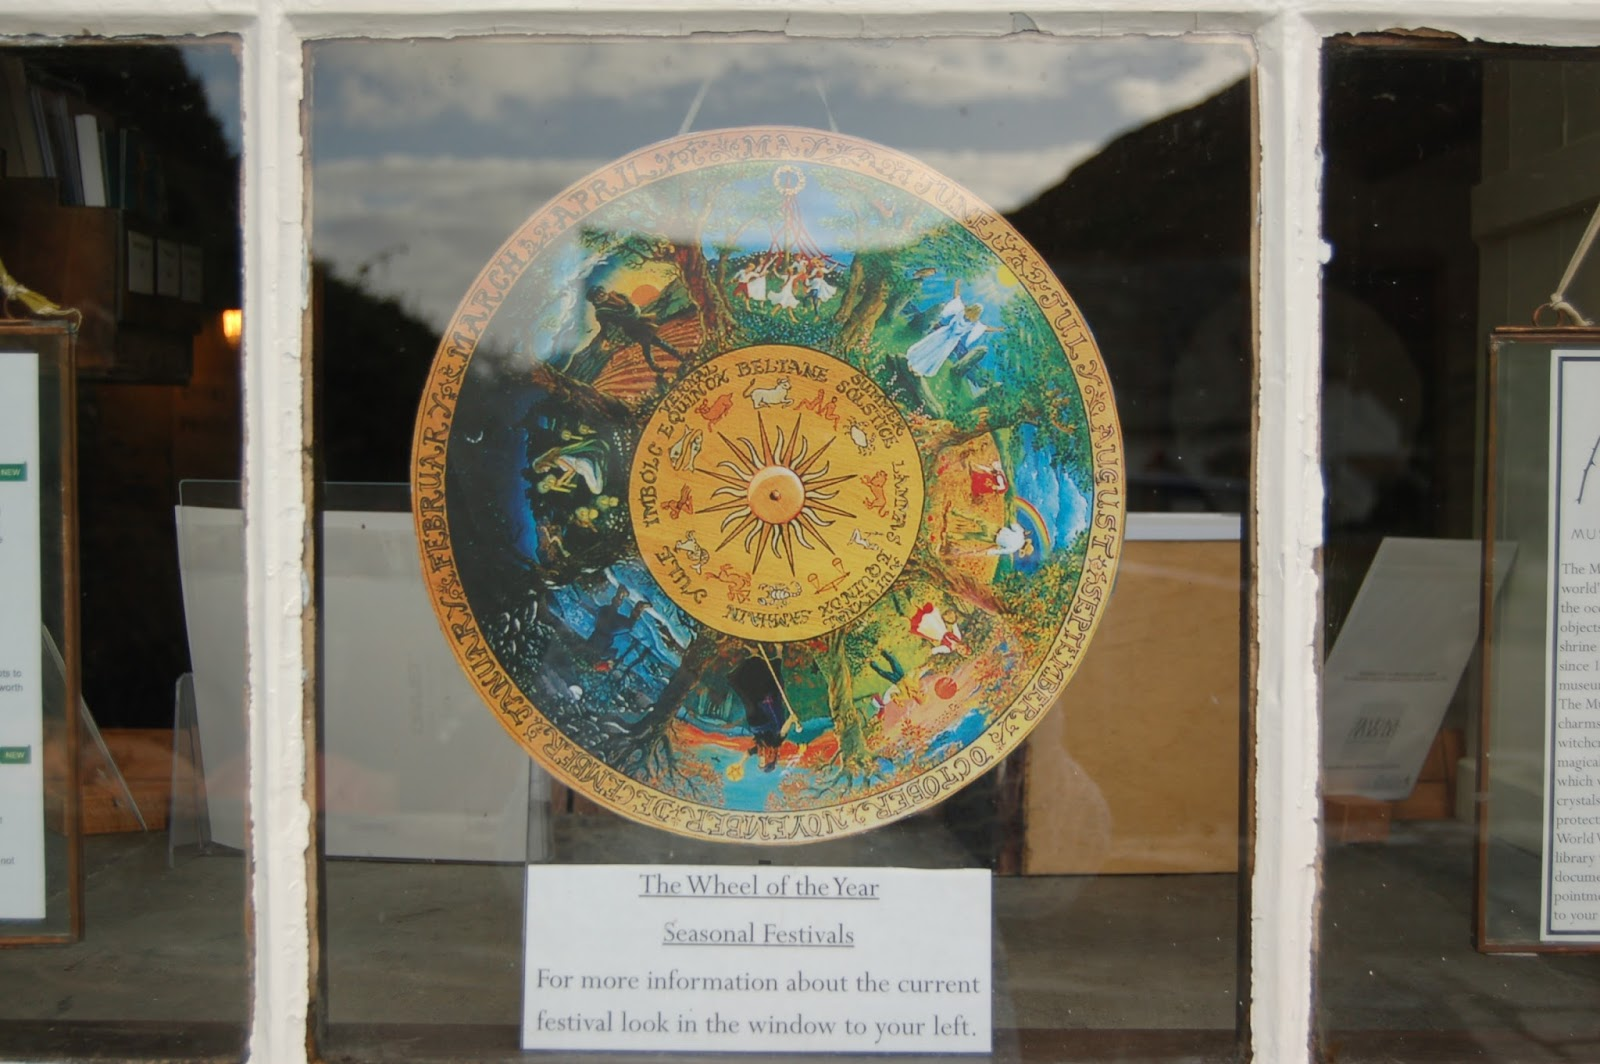 Wheel of the Year in pride of place